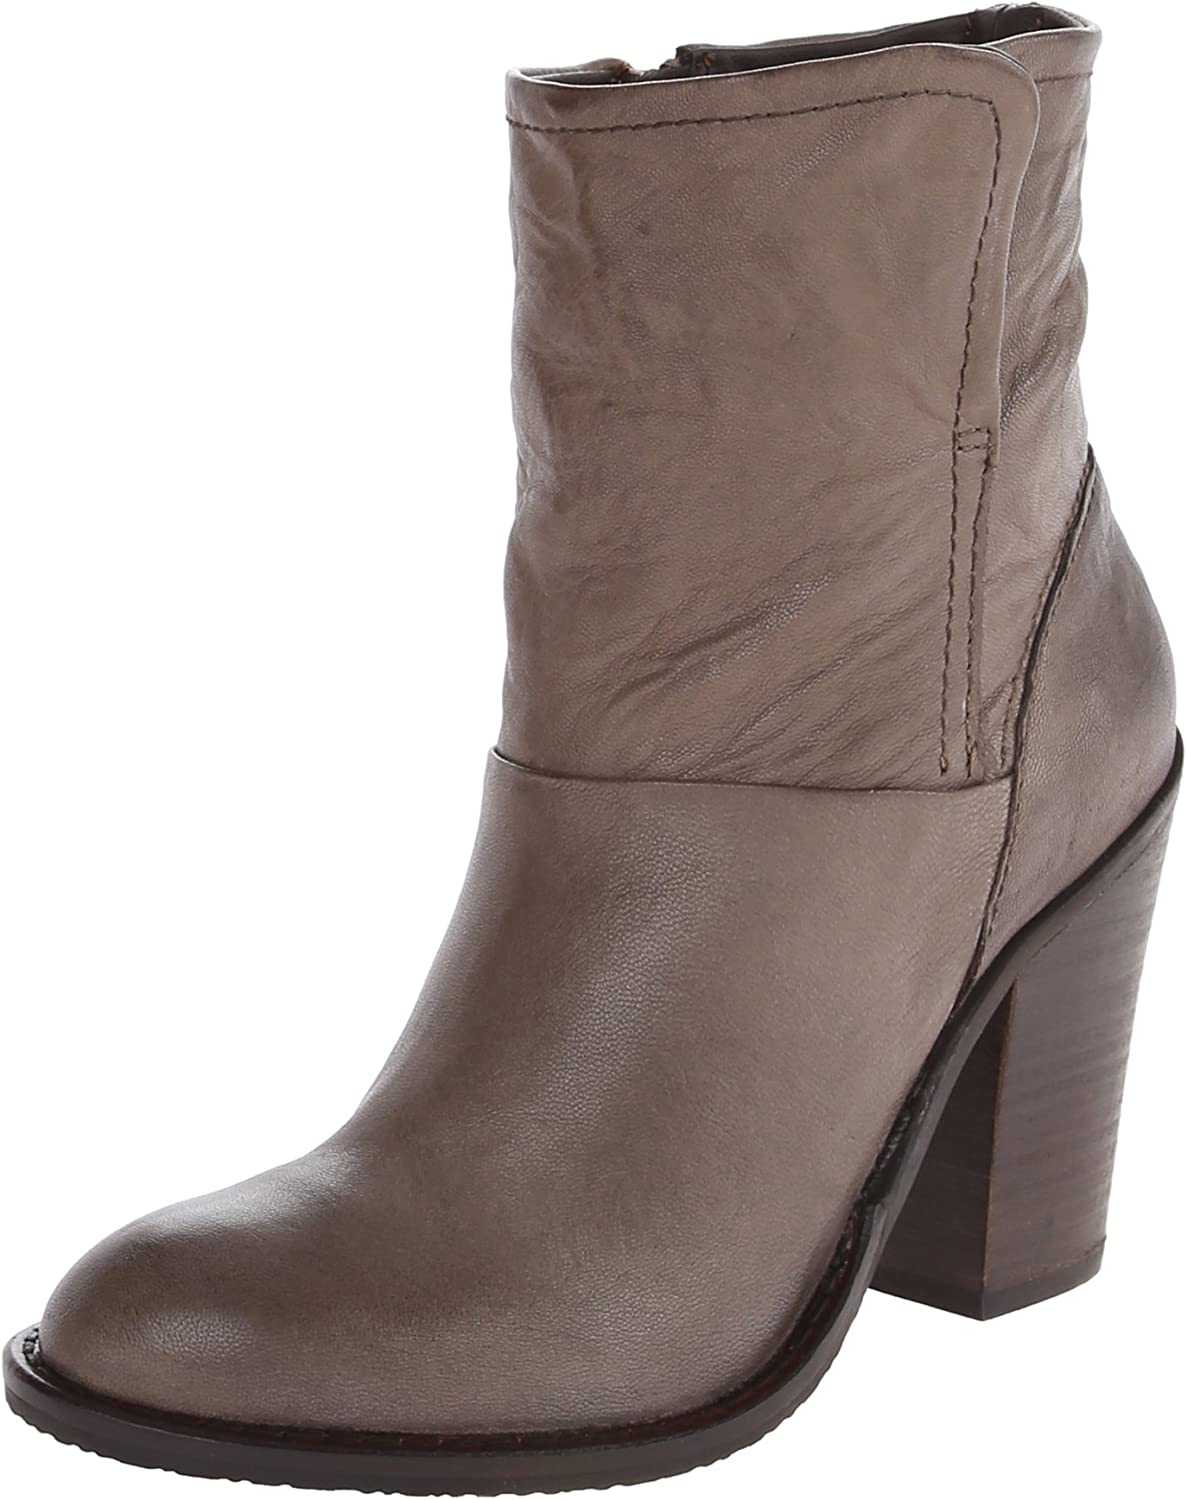 STEVEN by Steve Madden Women's Earla Boot